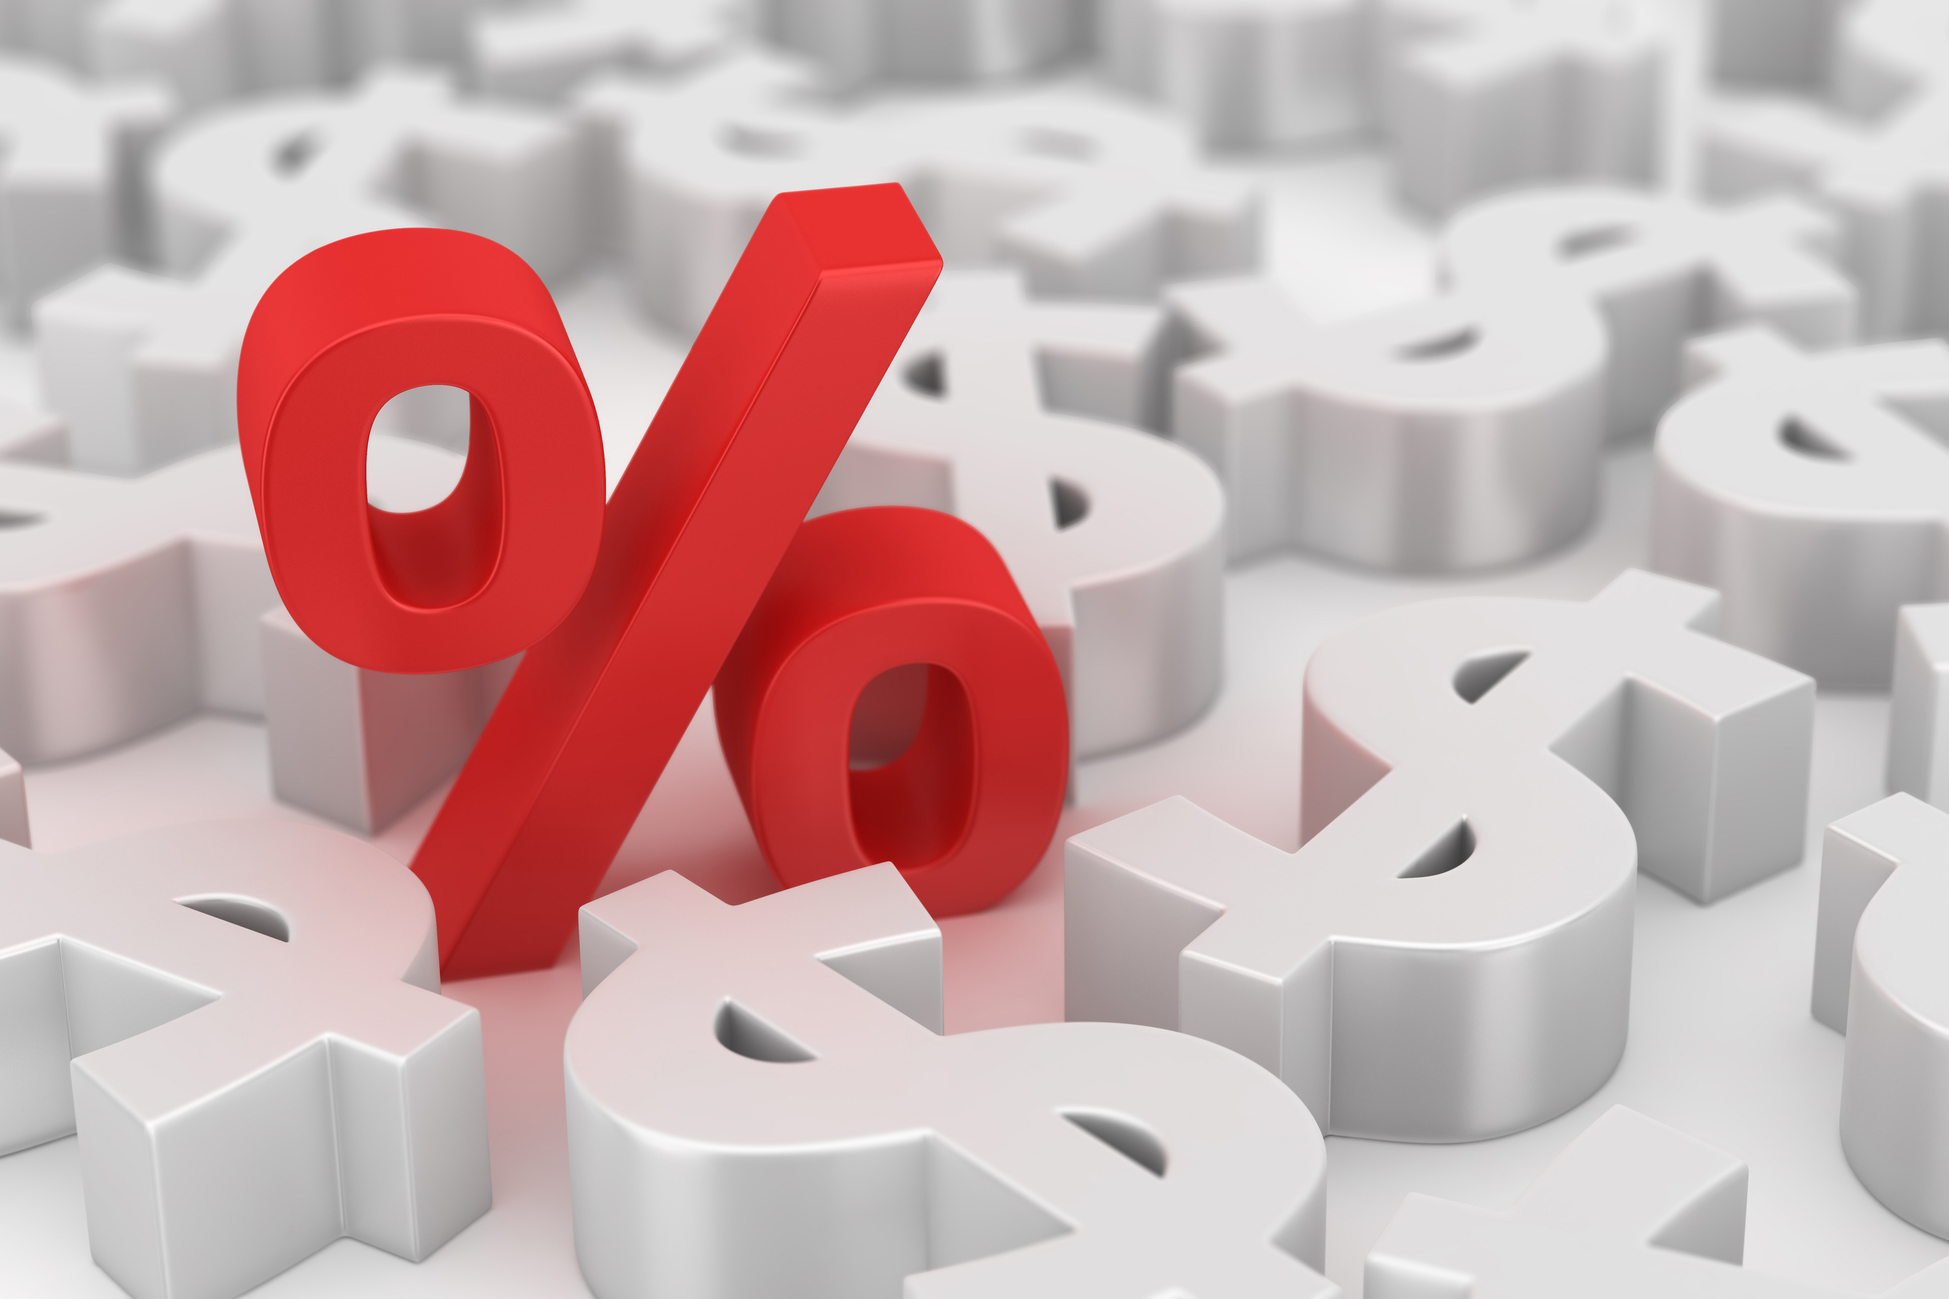 red percent sign amongst white dollar signs